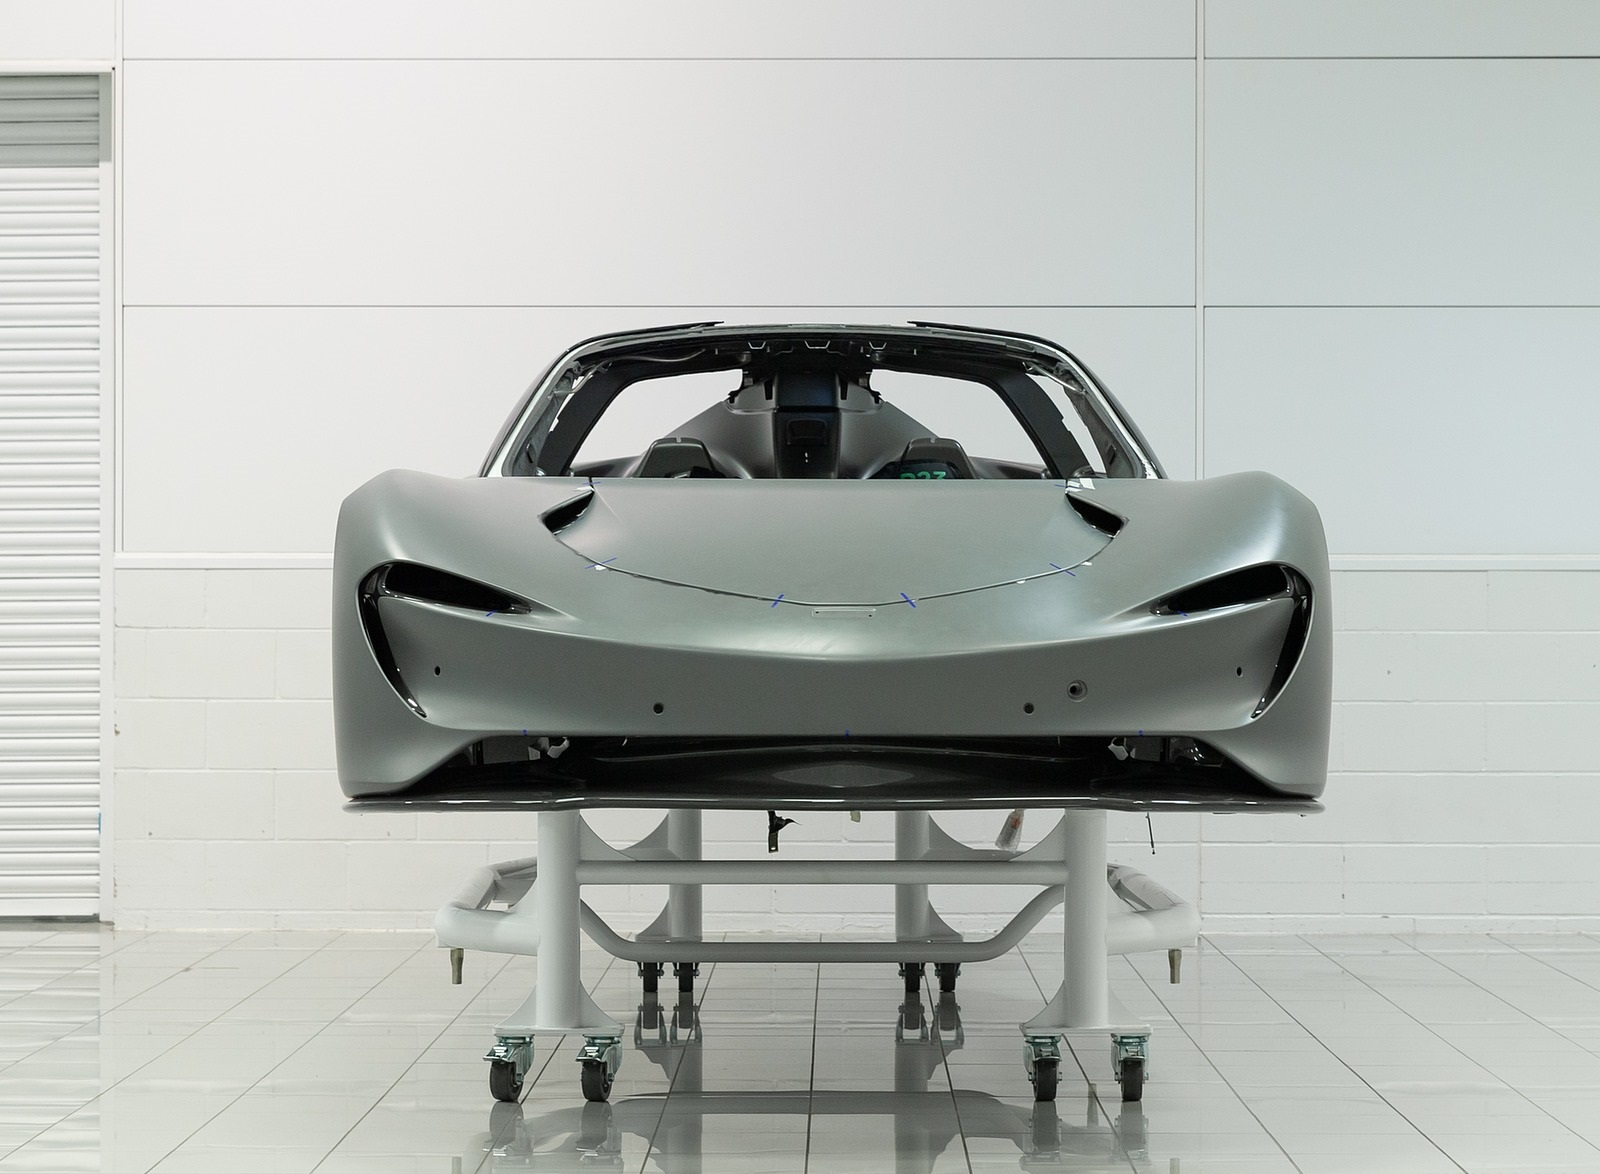 2019 McLaren Speedtail Making Of Wallpapers #33 of 39